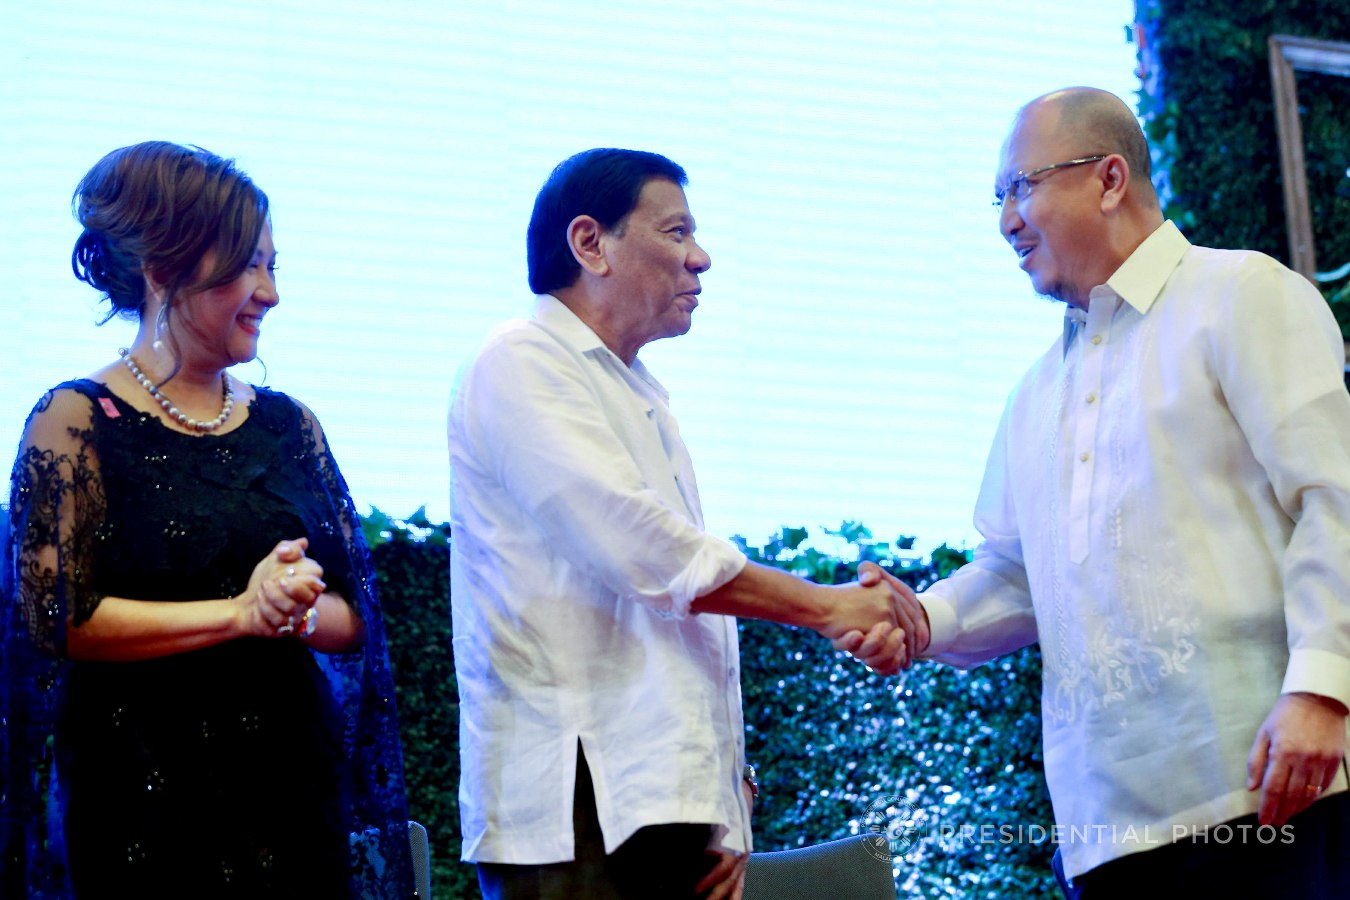 President Rodrigo Roa Duterte shows a gesture of appreciation Jorge Yulo of the Management Association of the Philippines who is among the partners of the Anti-Trafficking OFW Movement (ATOM) recognized during the 7th anniversary of the public service show, 'Buhay OFW', at the Sofitel Philippine Plaza in Pasay City on October 18, 2017. Also in the photo is ATOM Founding Chairperson Marissa Del Mar. RICHARD MADELO/PRESIDENTIAL PHOTO